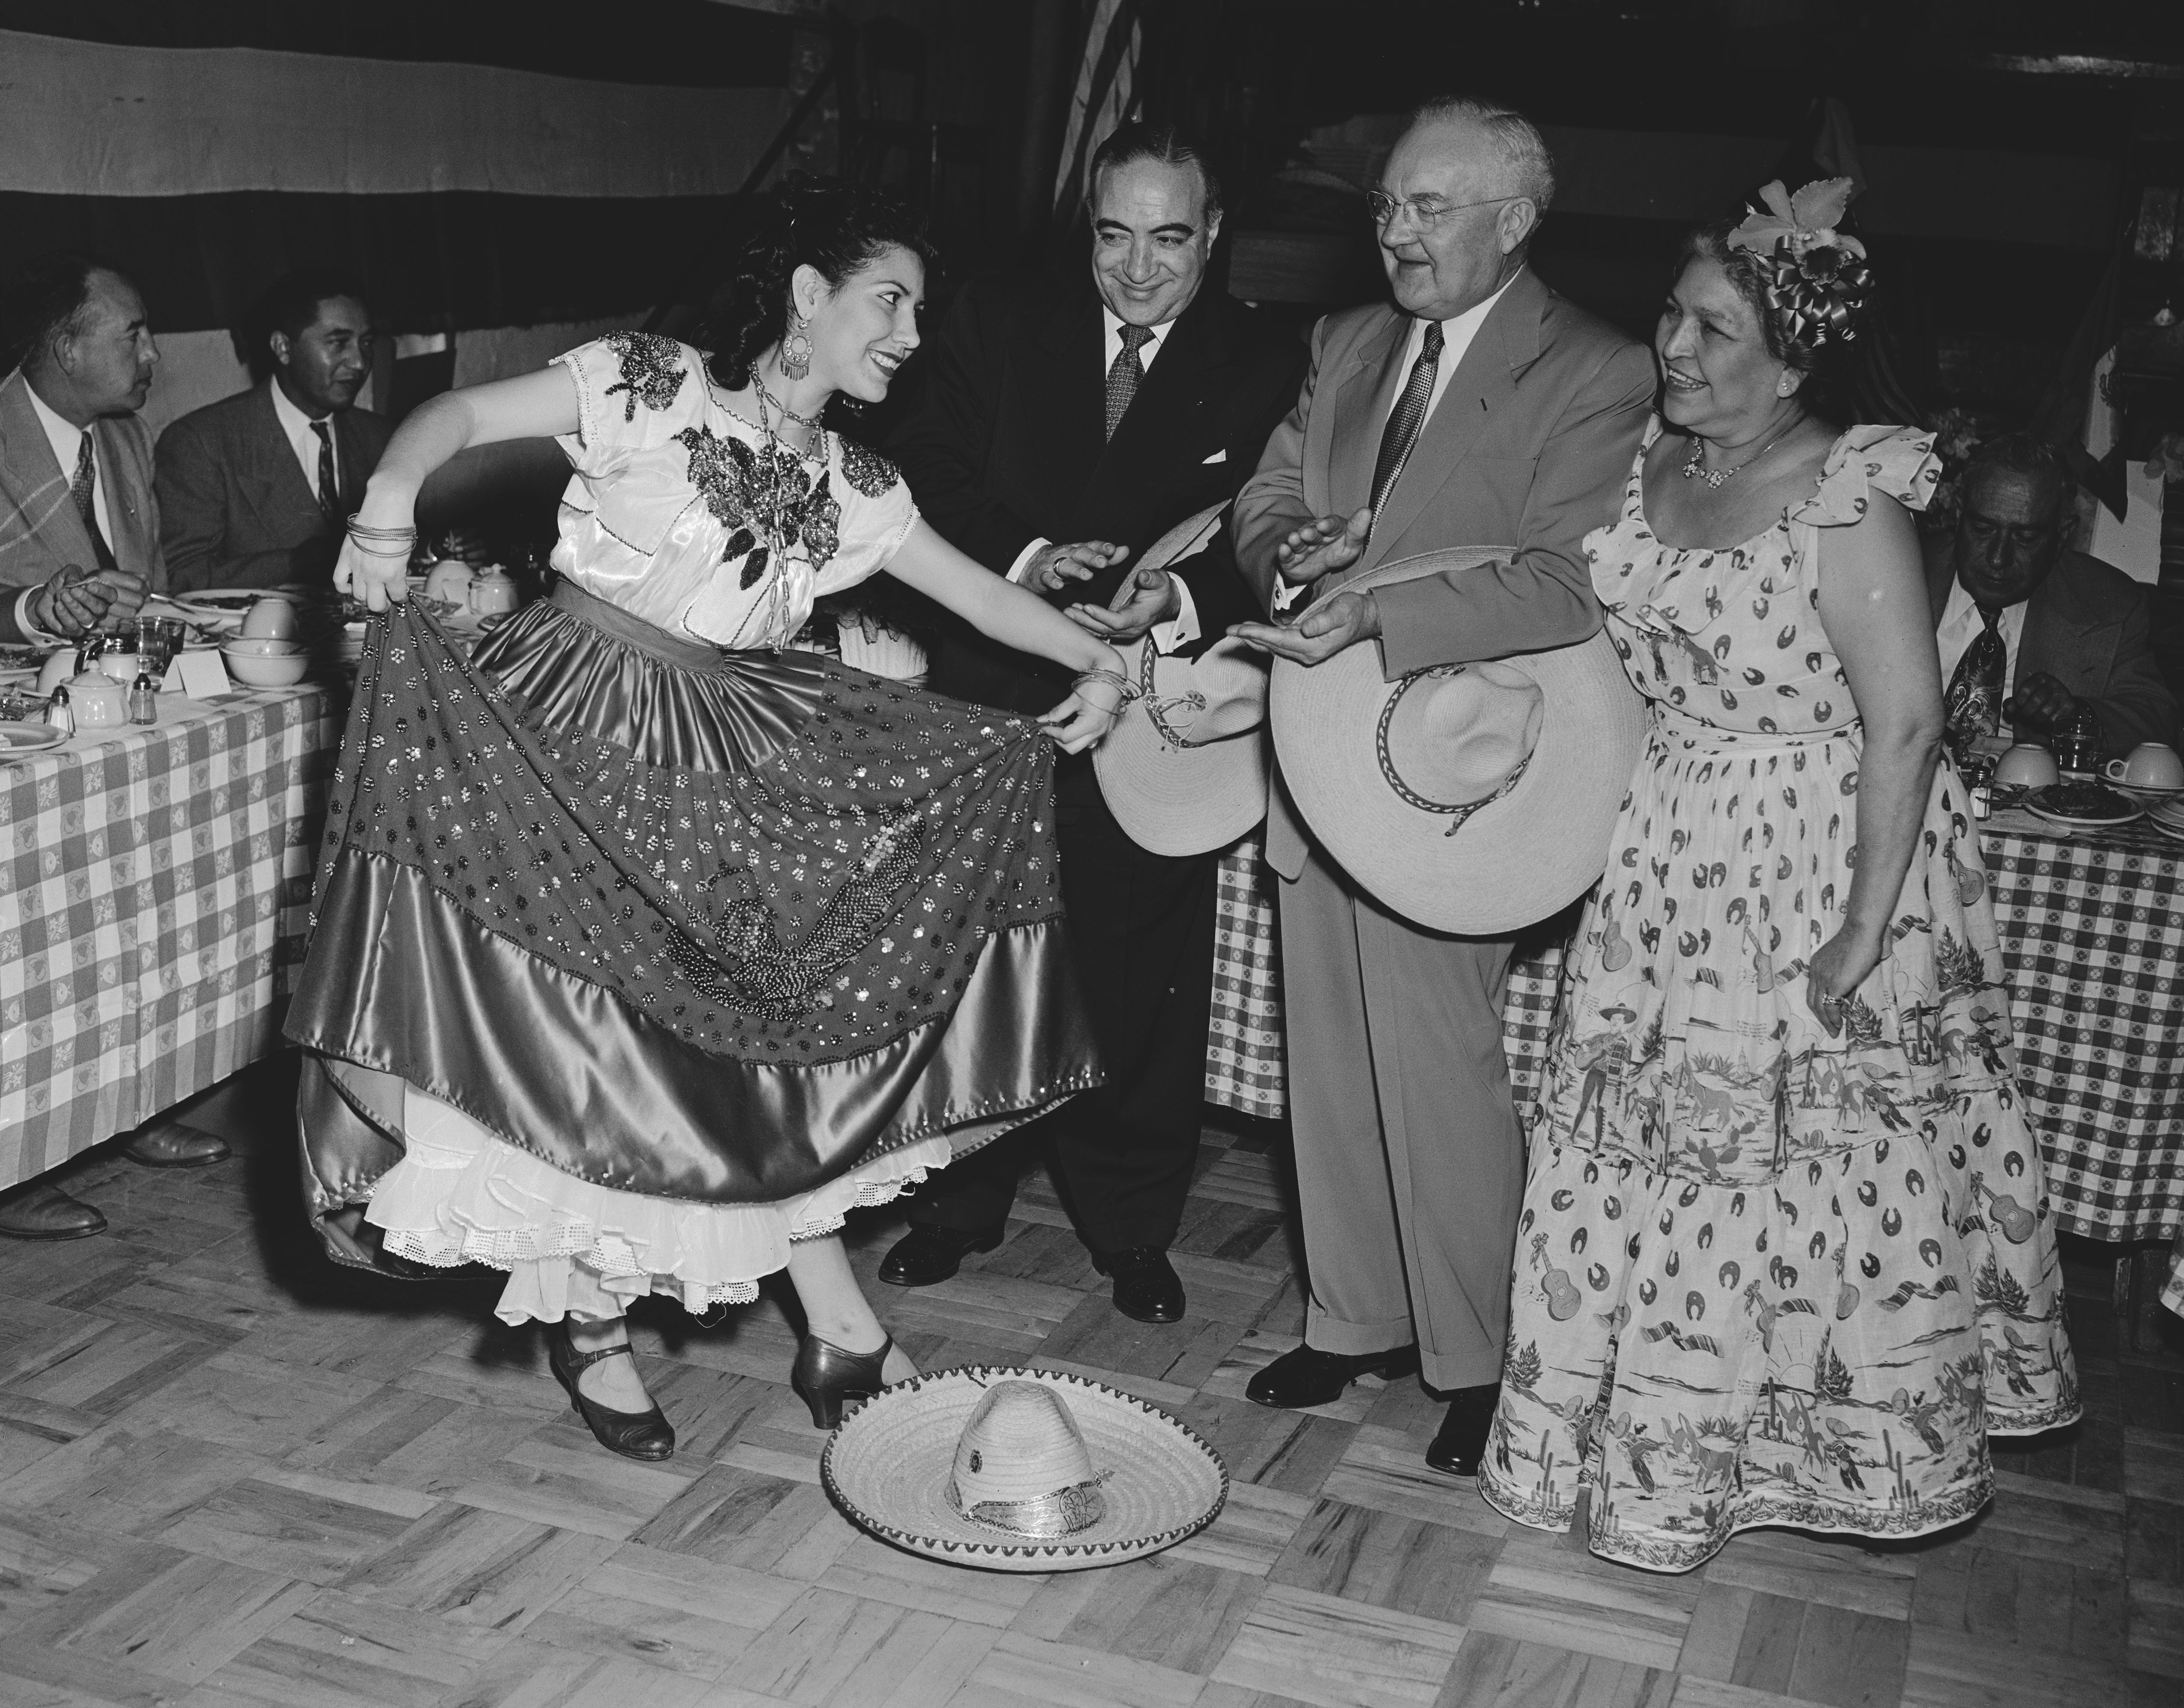 El Cinco de Mayo via Wikimedia Commons